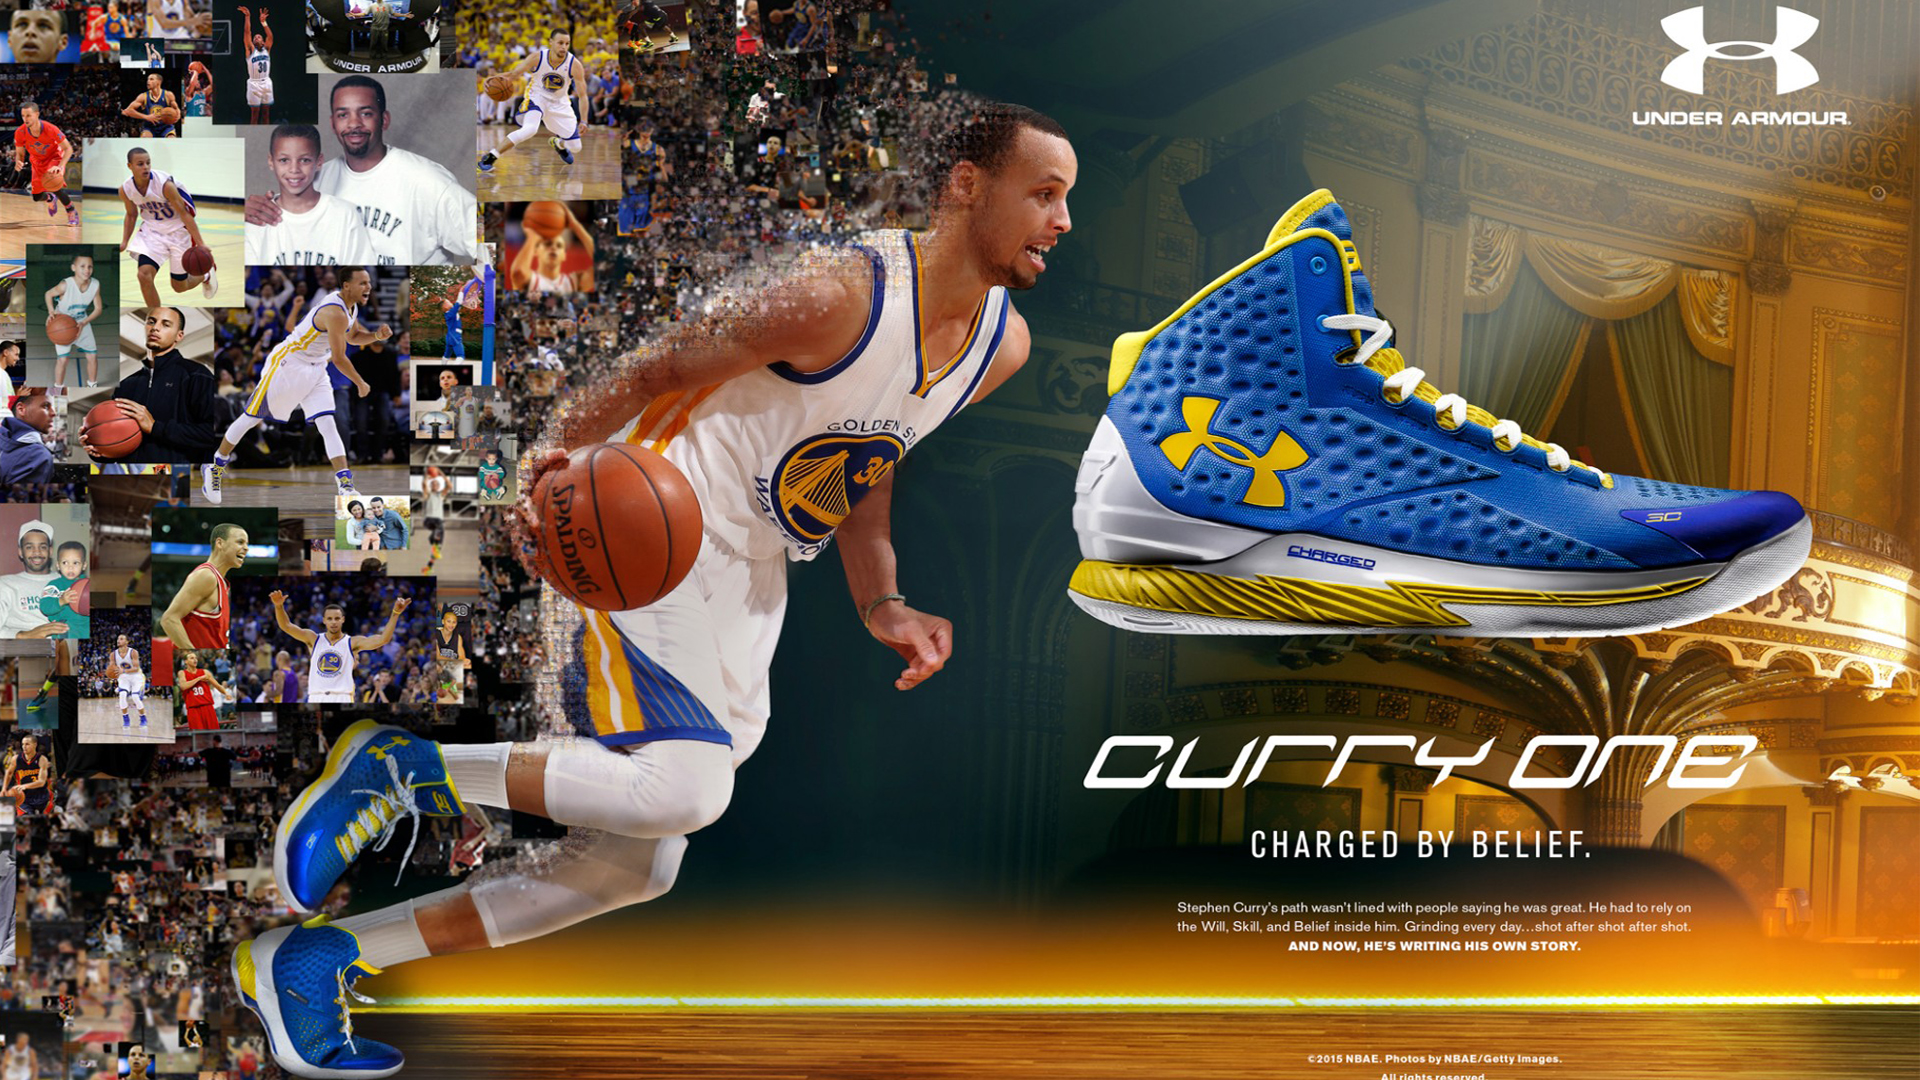 Cool Under Armour Wallpapers 04 Of 40 With Stephen Curry Shoes